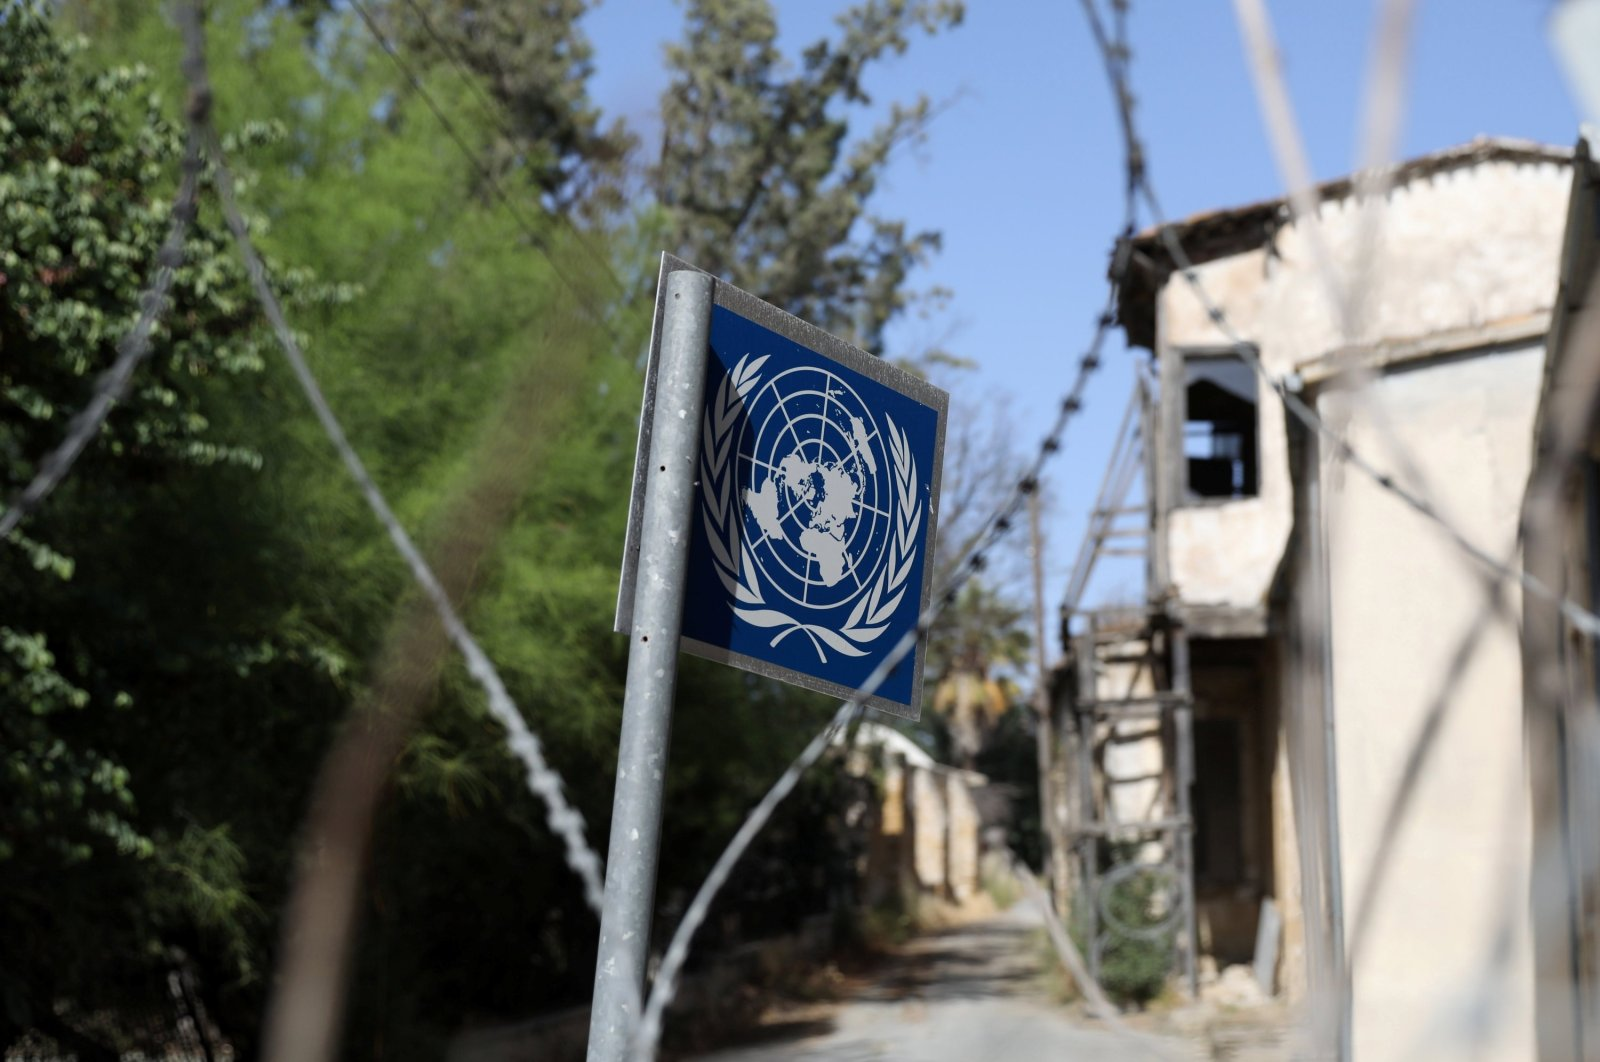 A United Nations sign stands in the U.N.-controlled buffer zone in Nicosia, on the island of Cyprus, April 28, 2021. (REUTERS)